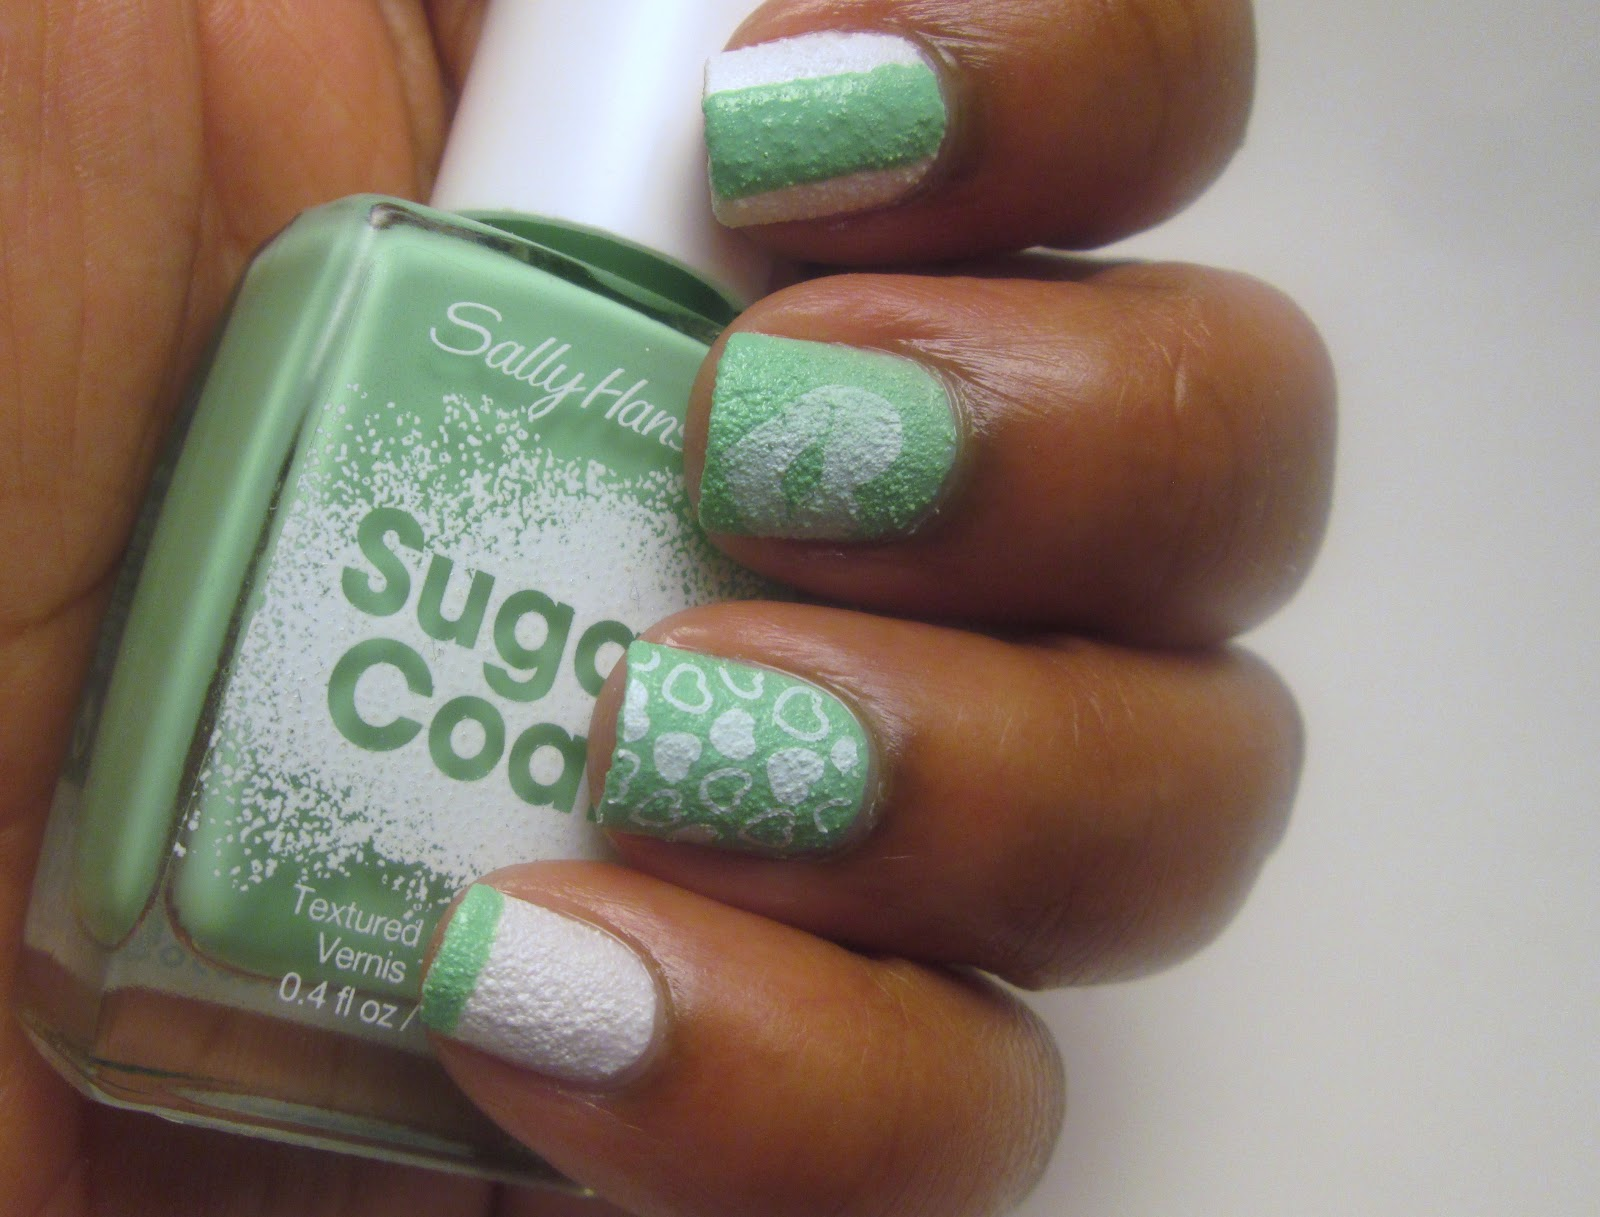 DAB NAILZ: Sally Hansen Texture Polish-Sugar Coat & Fuzzy Coat ...